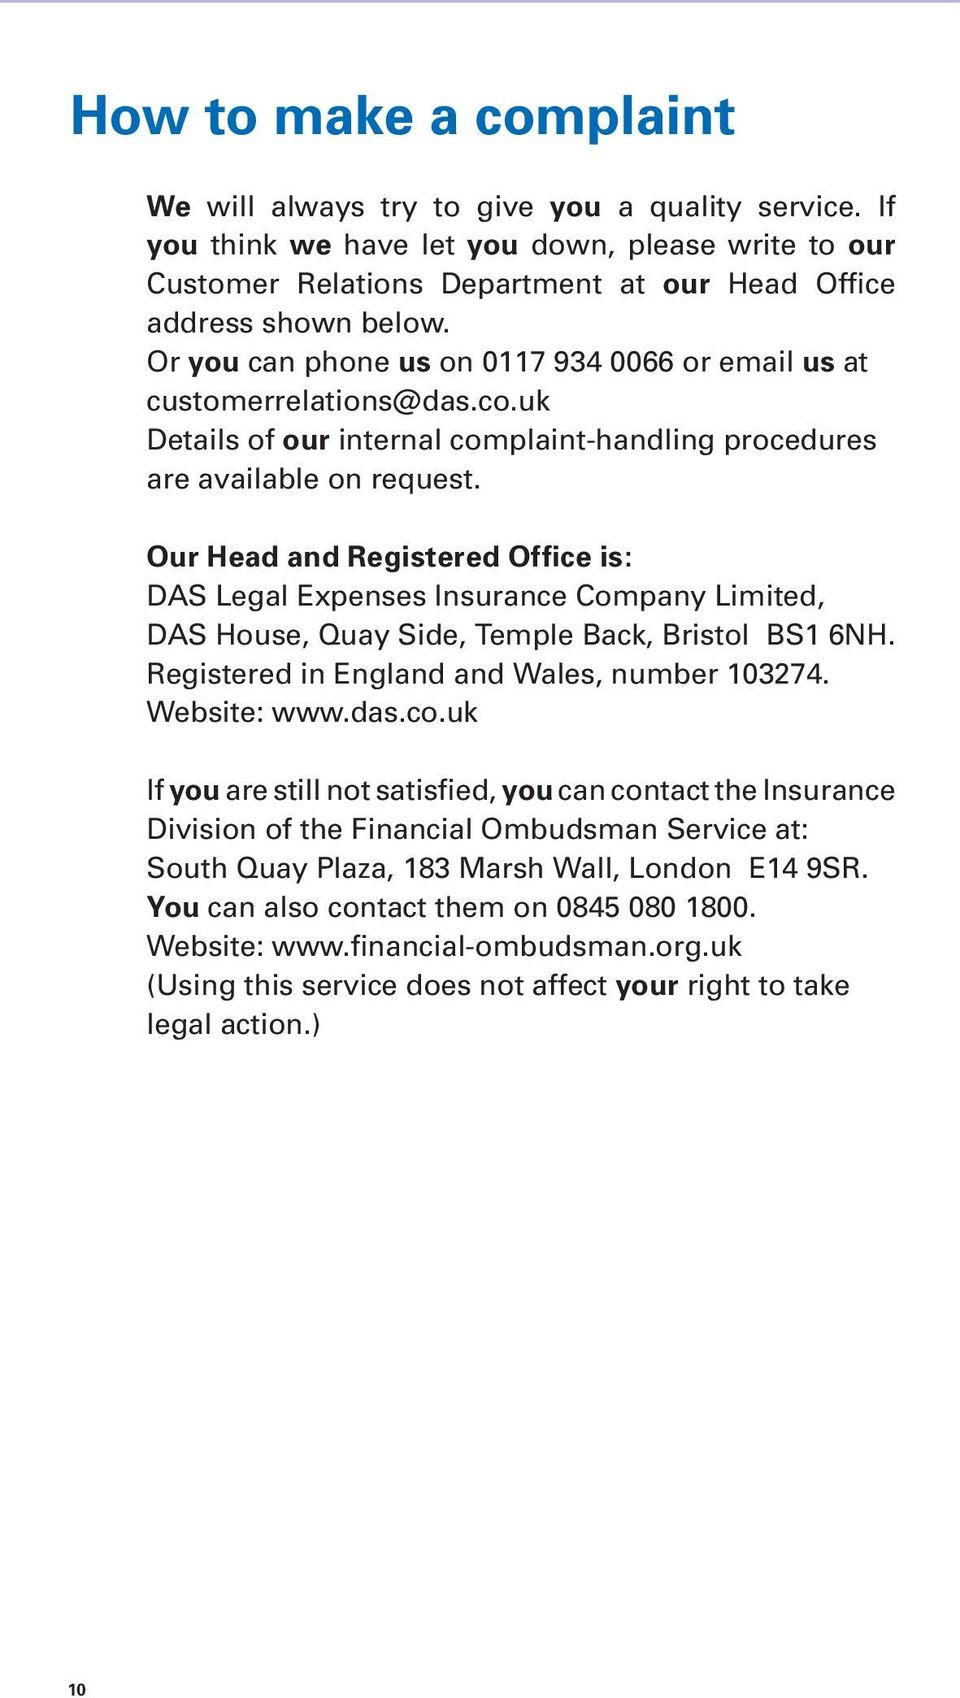 Our Head and Registered Office is: DAS Legal Expenses Insurance Company Limited, DAS House, Quay Side, Temple Back, Bristol BS1 6NH. Registered in England and Wales, number 103274. Website: www.das.